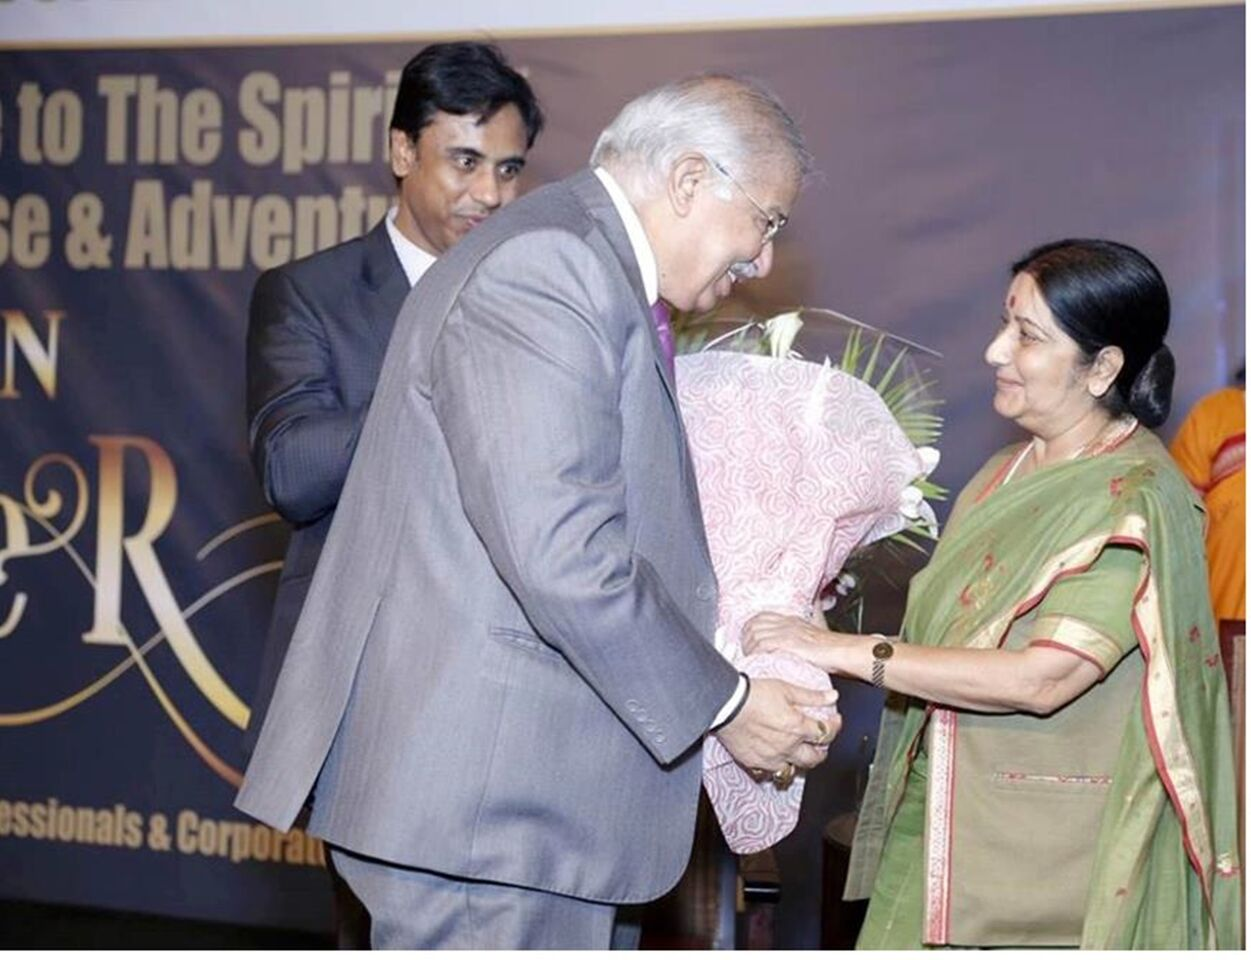 Indian Minister of External Affairs Sushma Swaraj being  welcomed by Dr. Ram  Buxani  during  the official launch of the book 'The Indian Super 100' in Dubai.